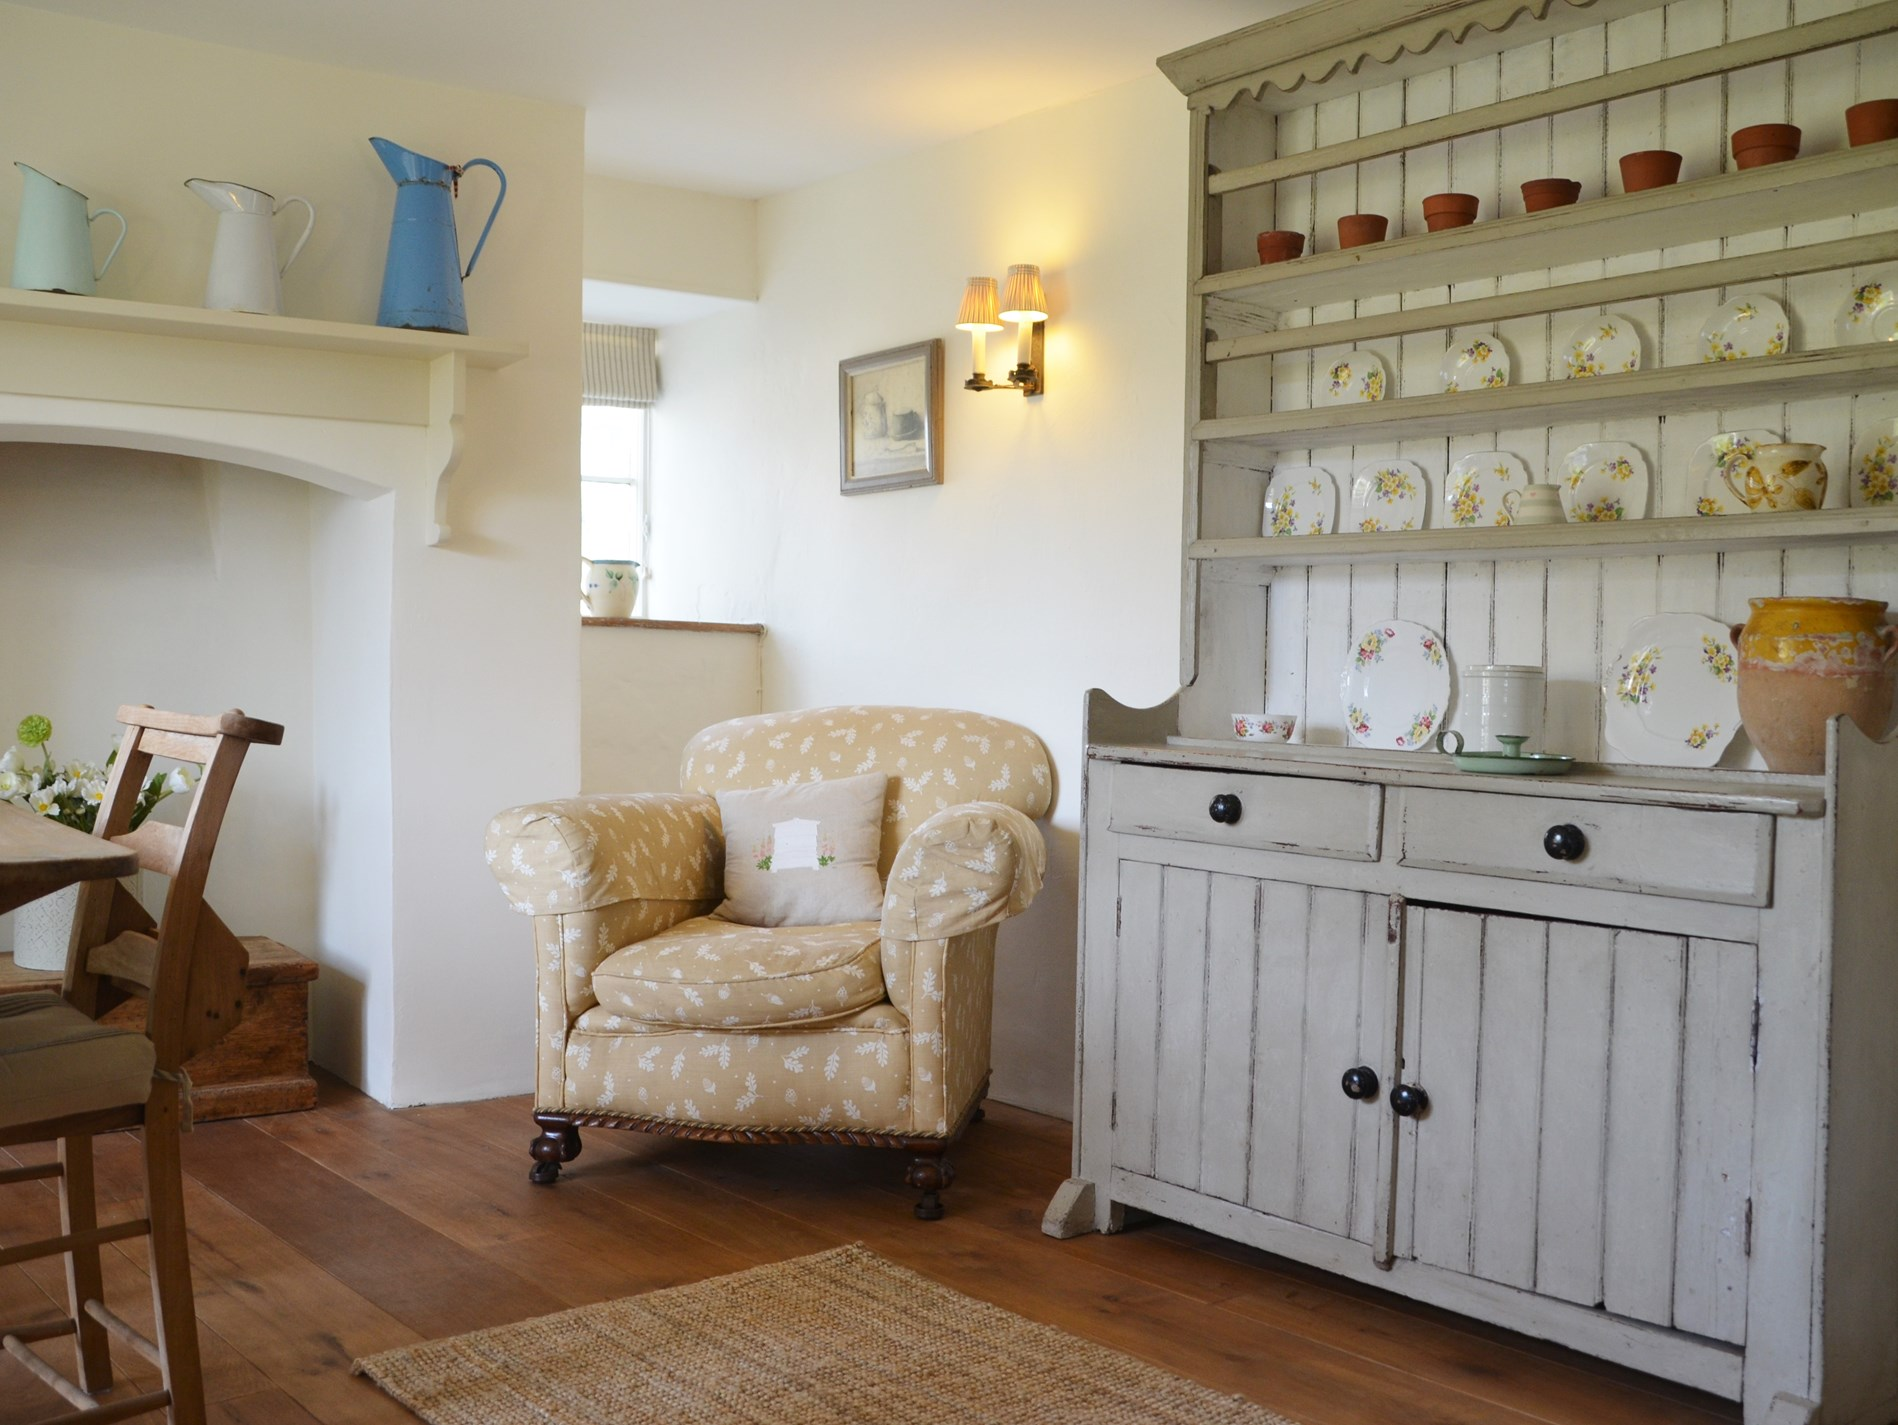 A traditional dresser finishes the room perfectly